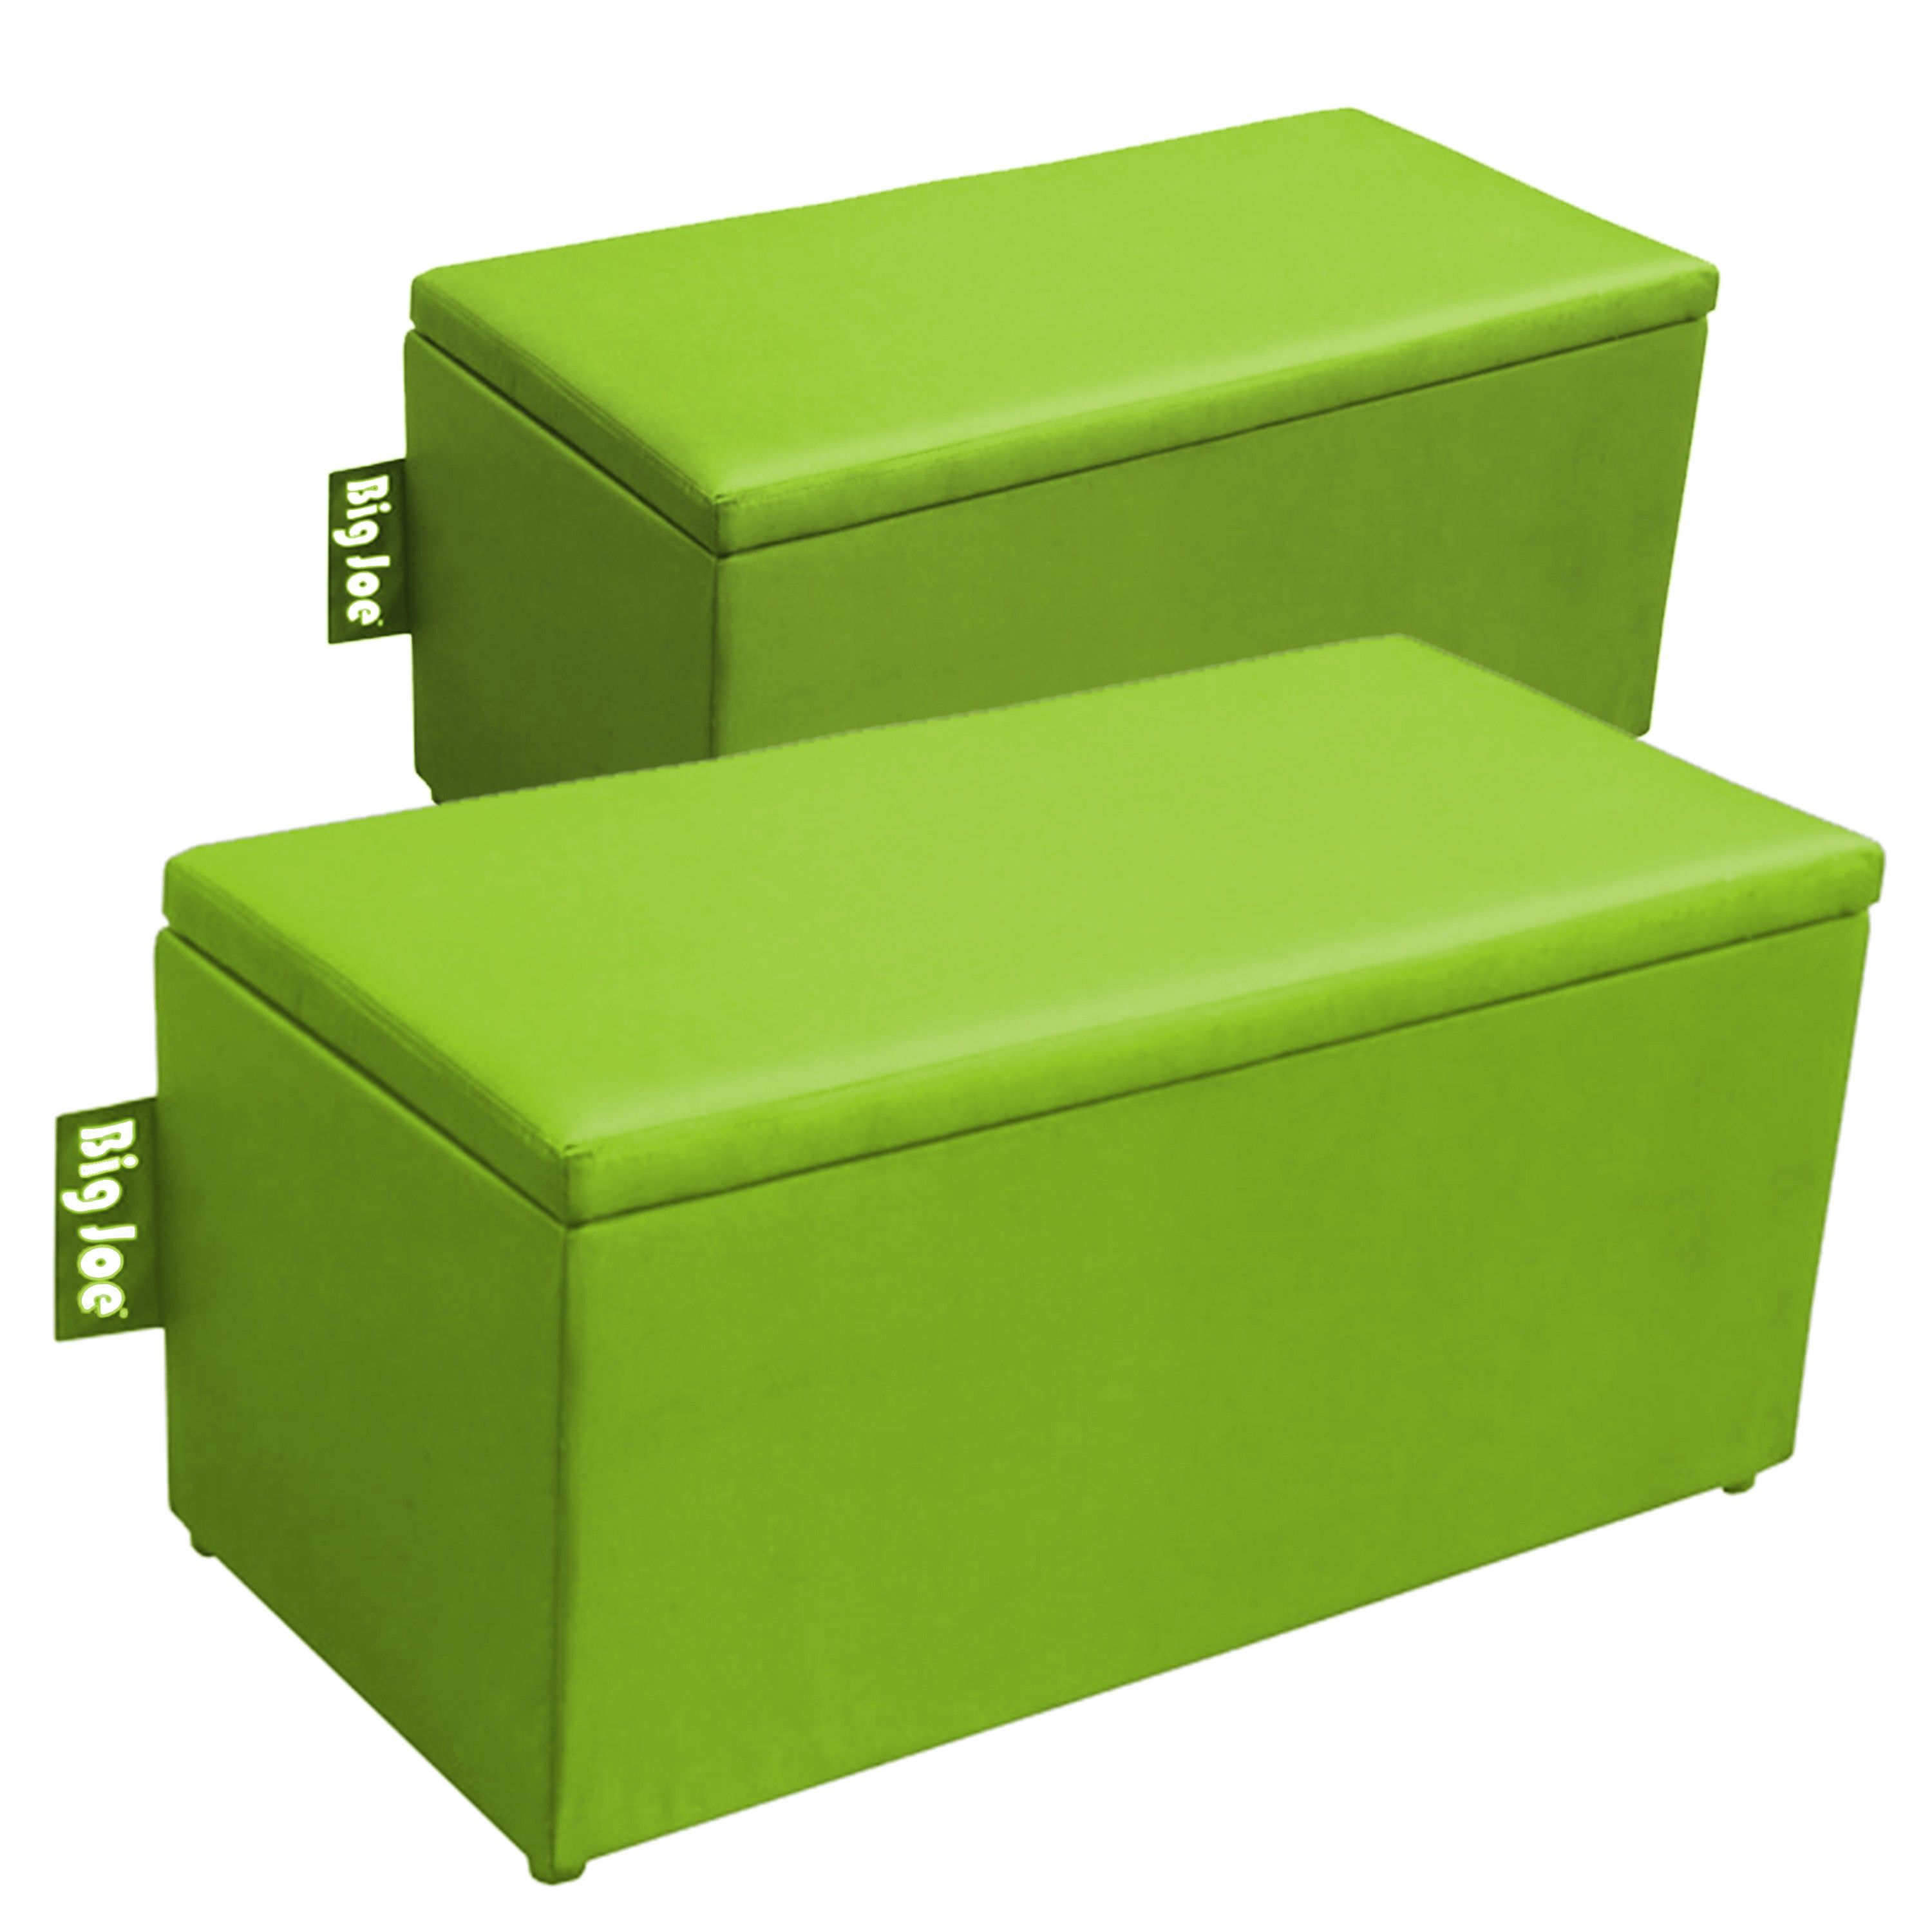 Stupendous Big Joe 2 In 1 Bench Ottoman Bean Bag Chairs Ottoman Creativecarmelina Interior Chair Design Creativecarmelinacom